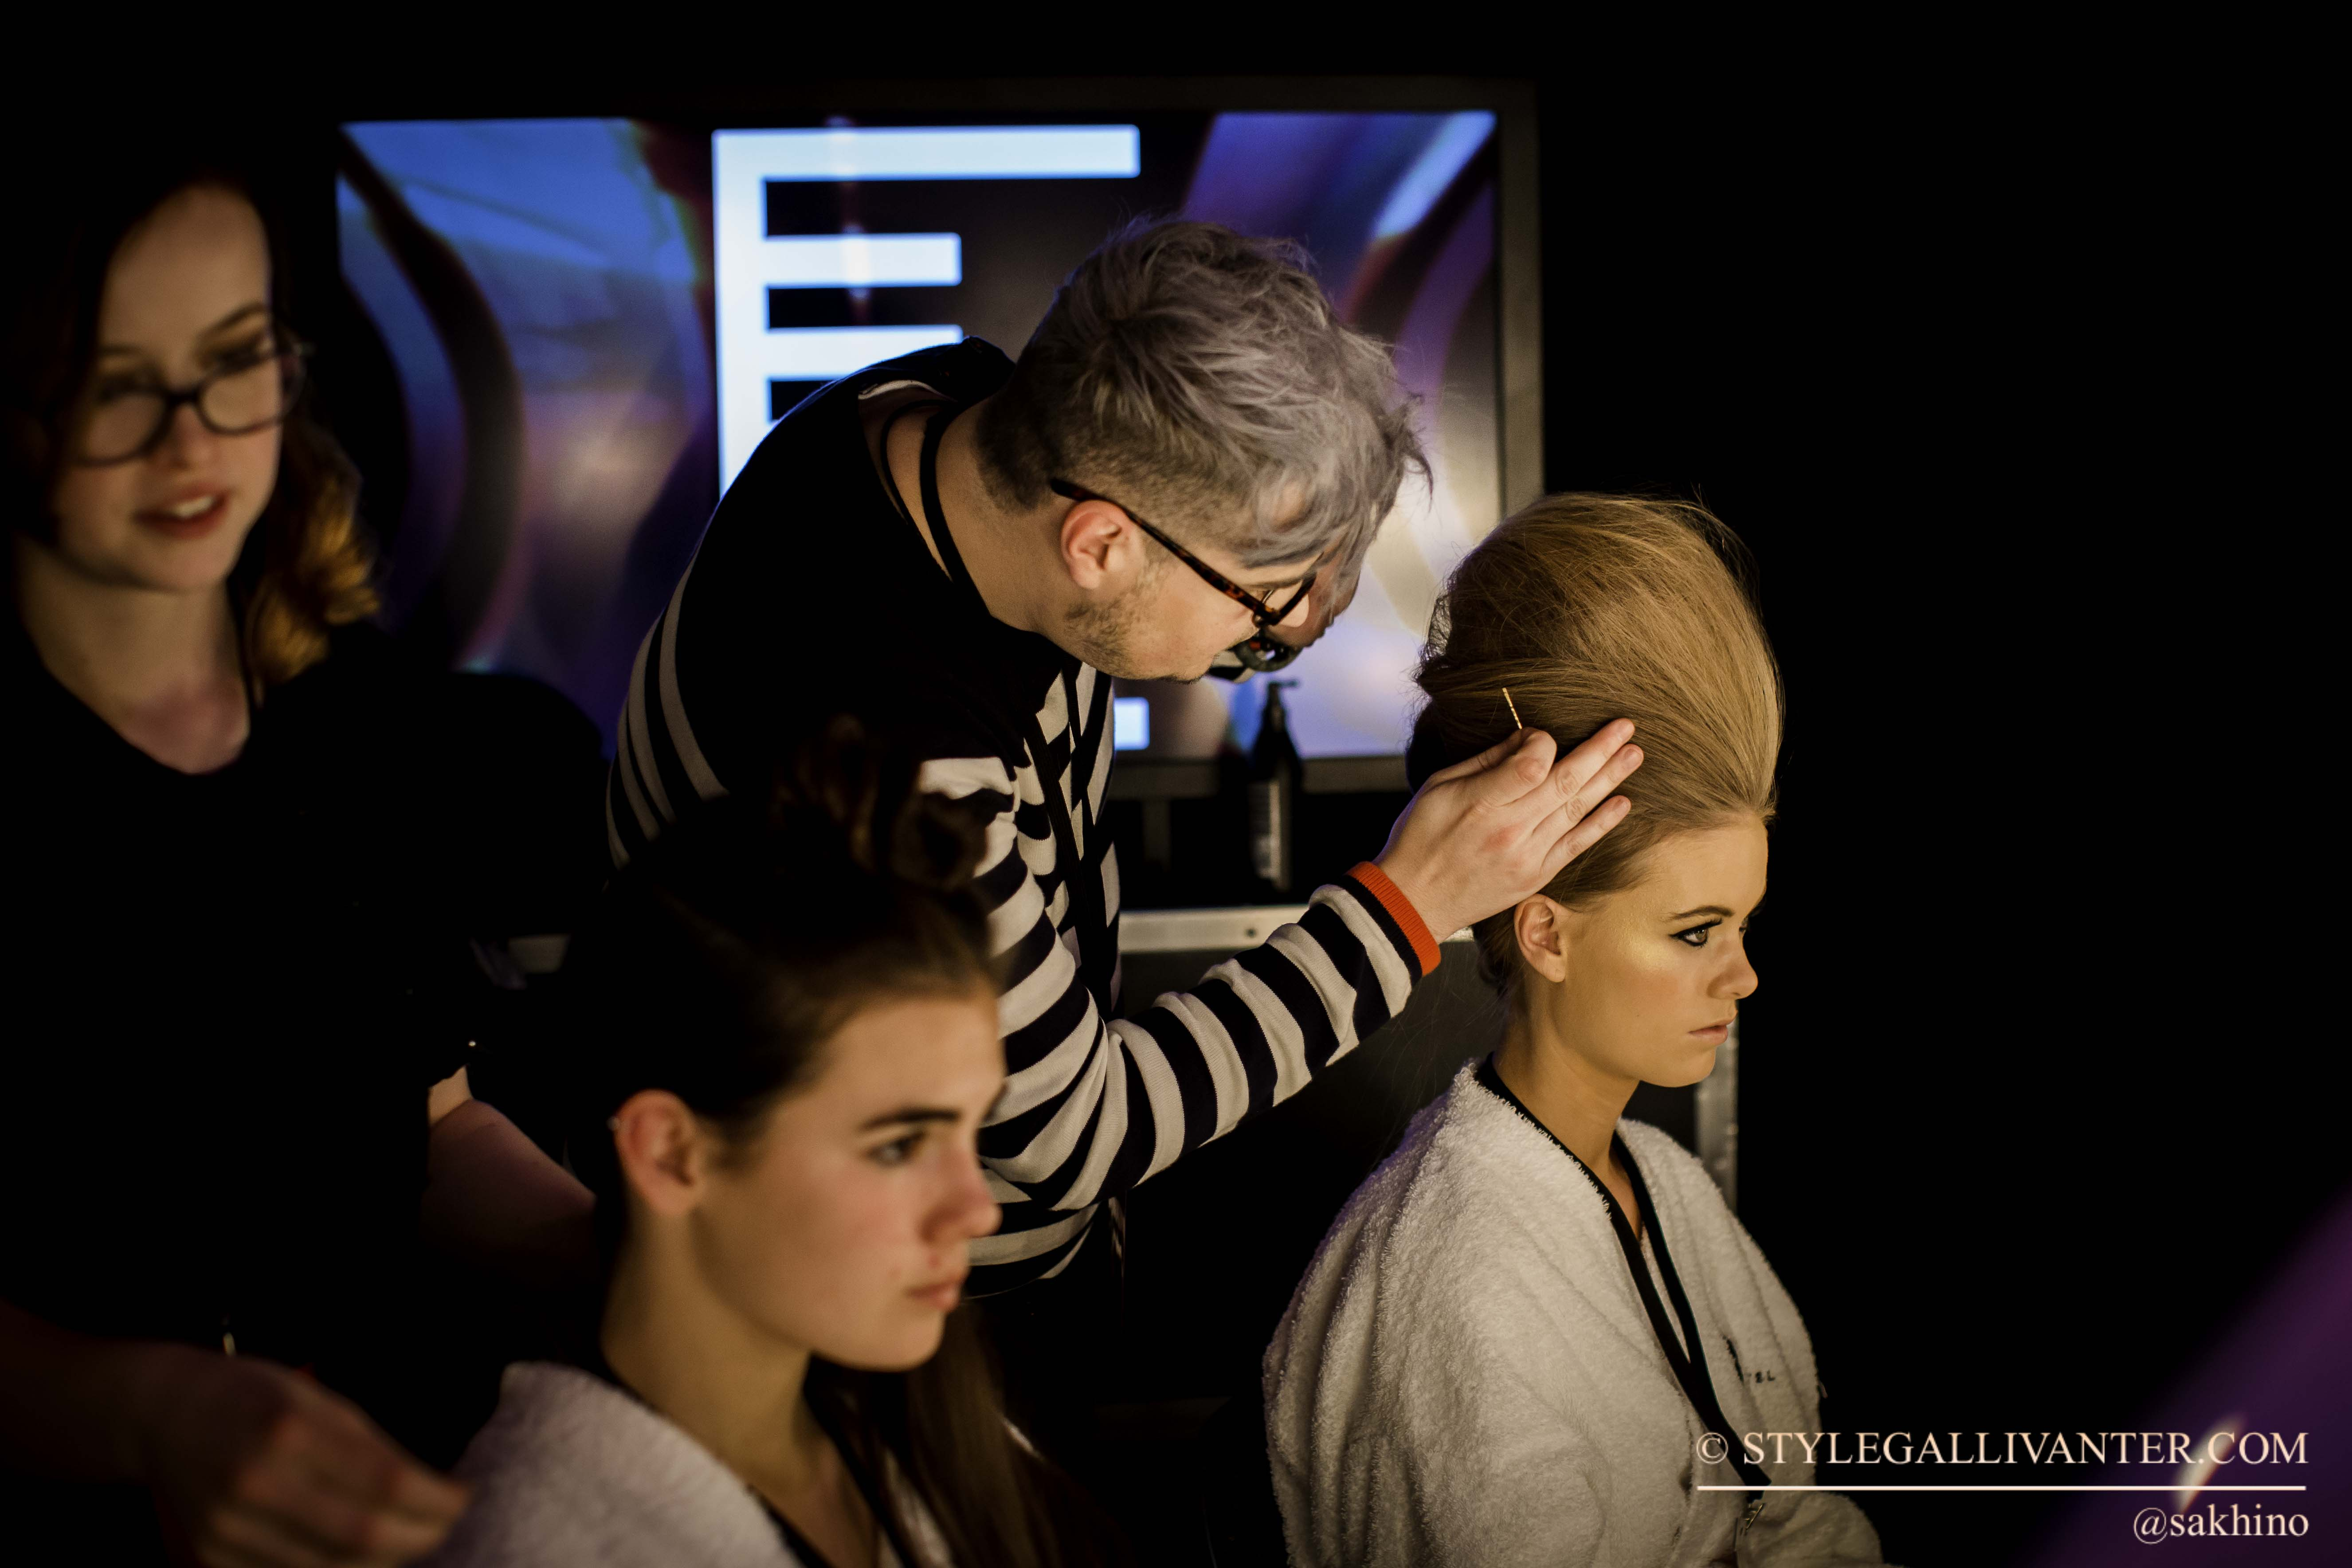 stylegallivanter.com-copyright-2015_not-to-be-used-without-permission_PHOTOGRAPHY-CREDIT-ANDREW-KIBUKA_fashfest-2015-audi_fashfest-2015-backstage-9